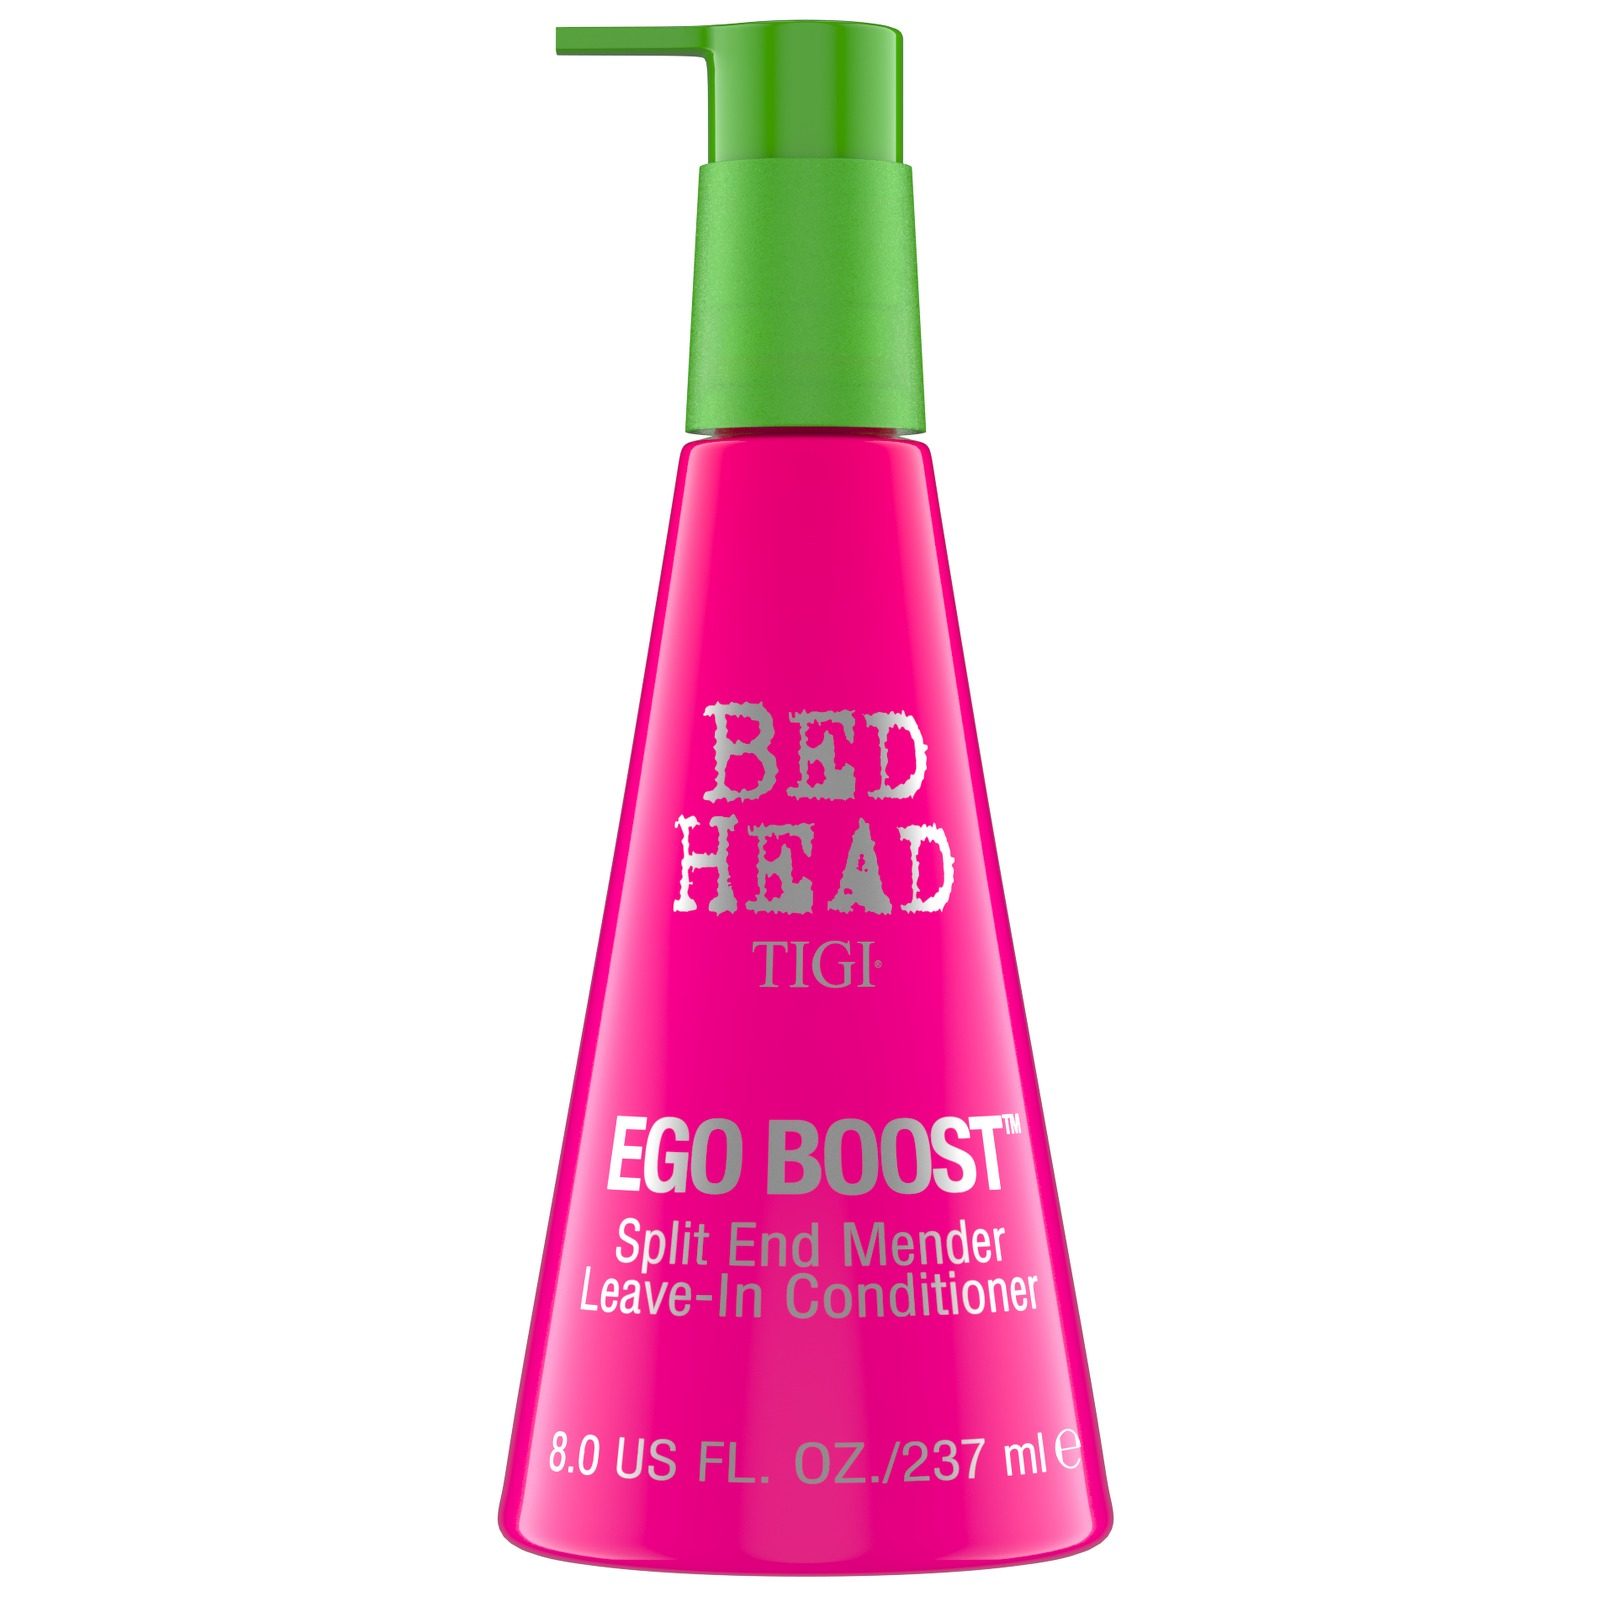 TIGI Bed Head Smoothing, Frizz Control and Shine Ego Boost Moisturising Leave In Conditioner 237ml